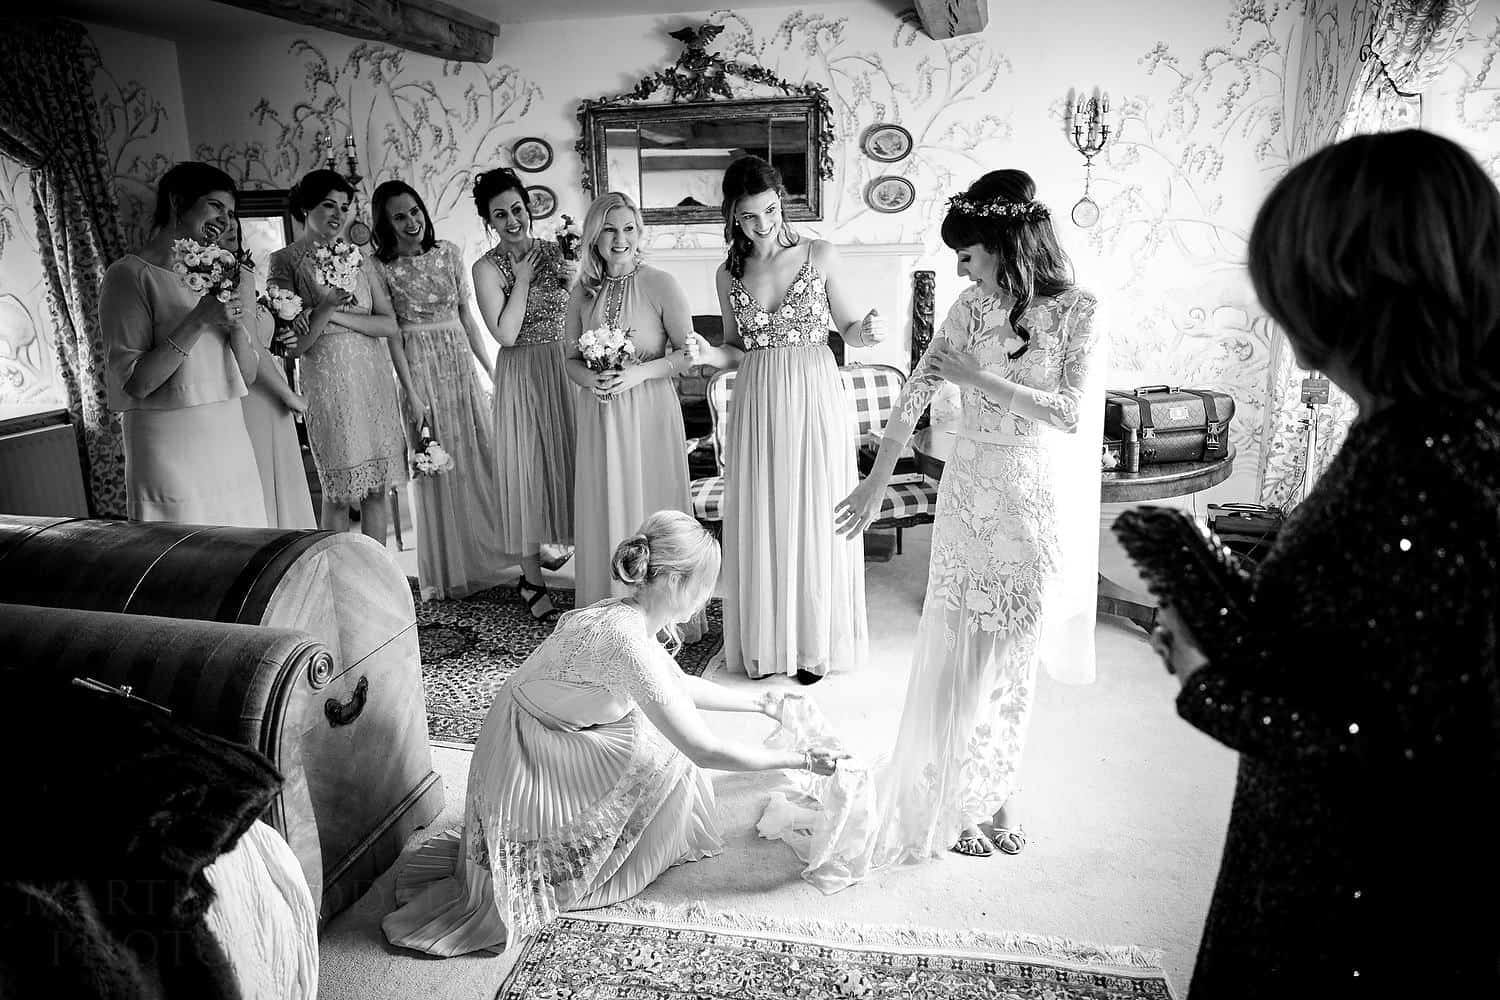 showing the wedding dress to the bridesmaids